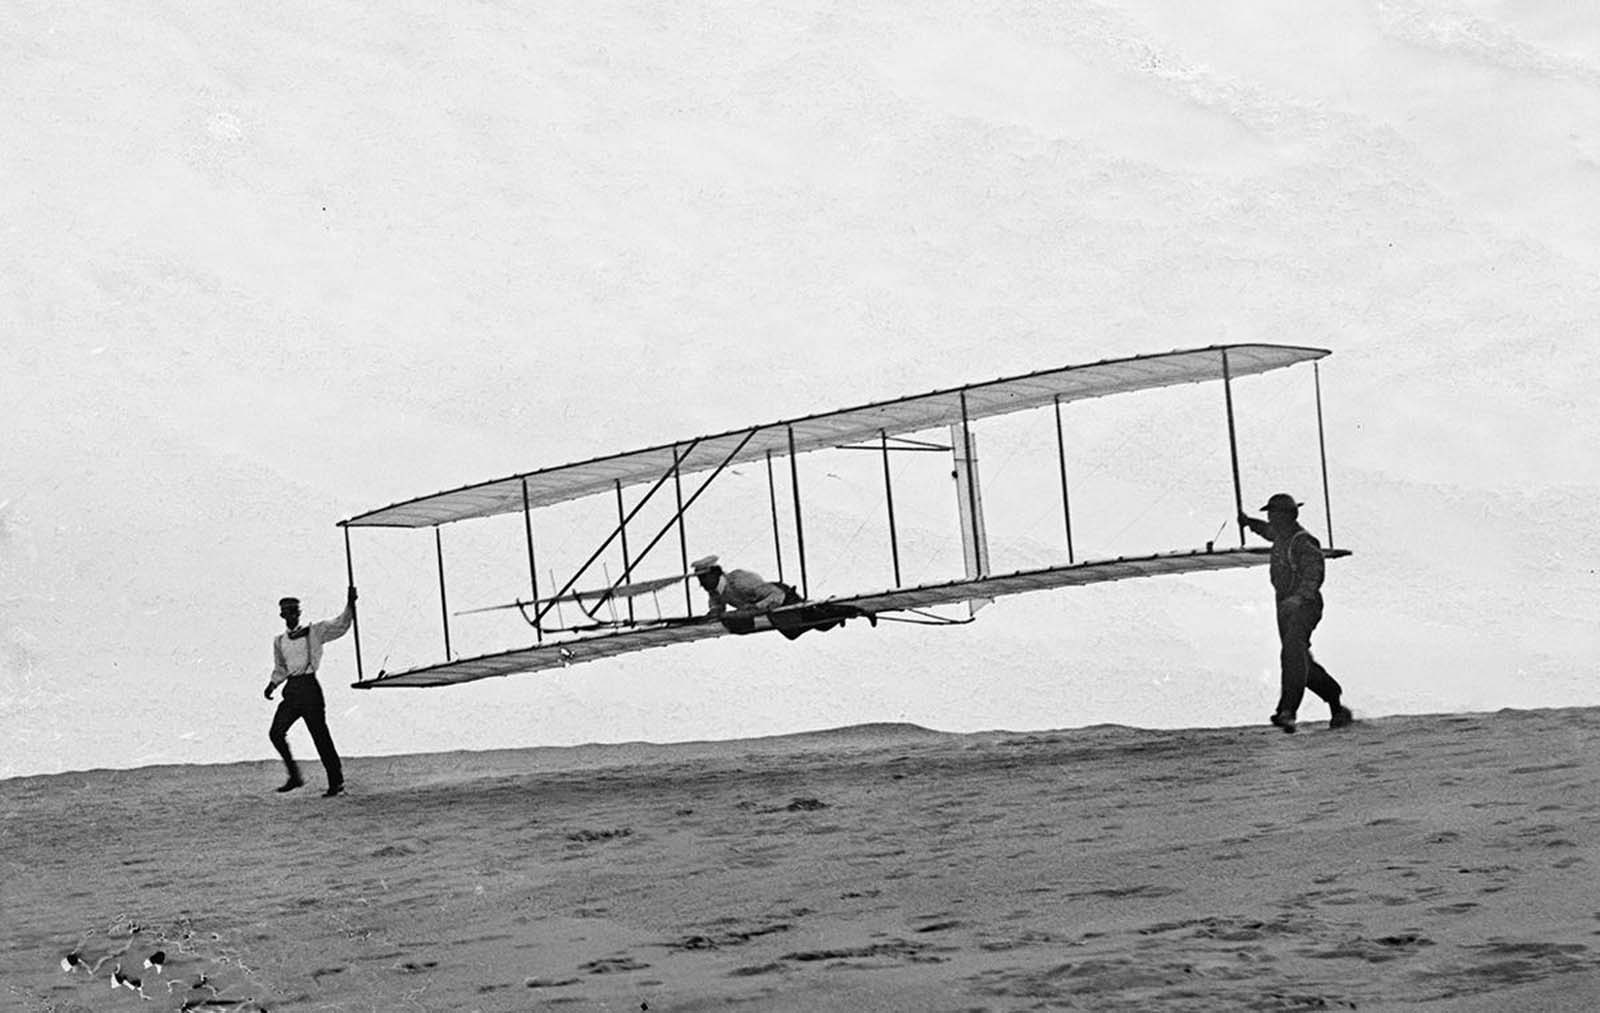 Start of a glide; Wilbur in motion at left holding one end of glider (rebuilt with single vertical rudder), Orville lying prone in machine, and Dan Tate at right, in Kitty Hawk, North Carolina, on October 10, 1902.